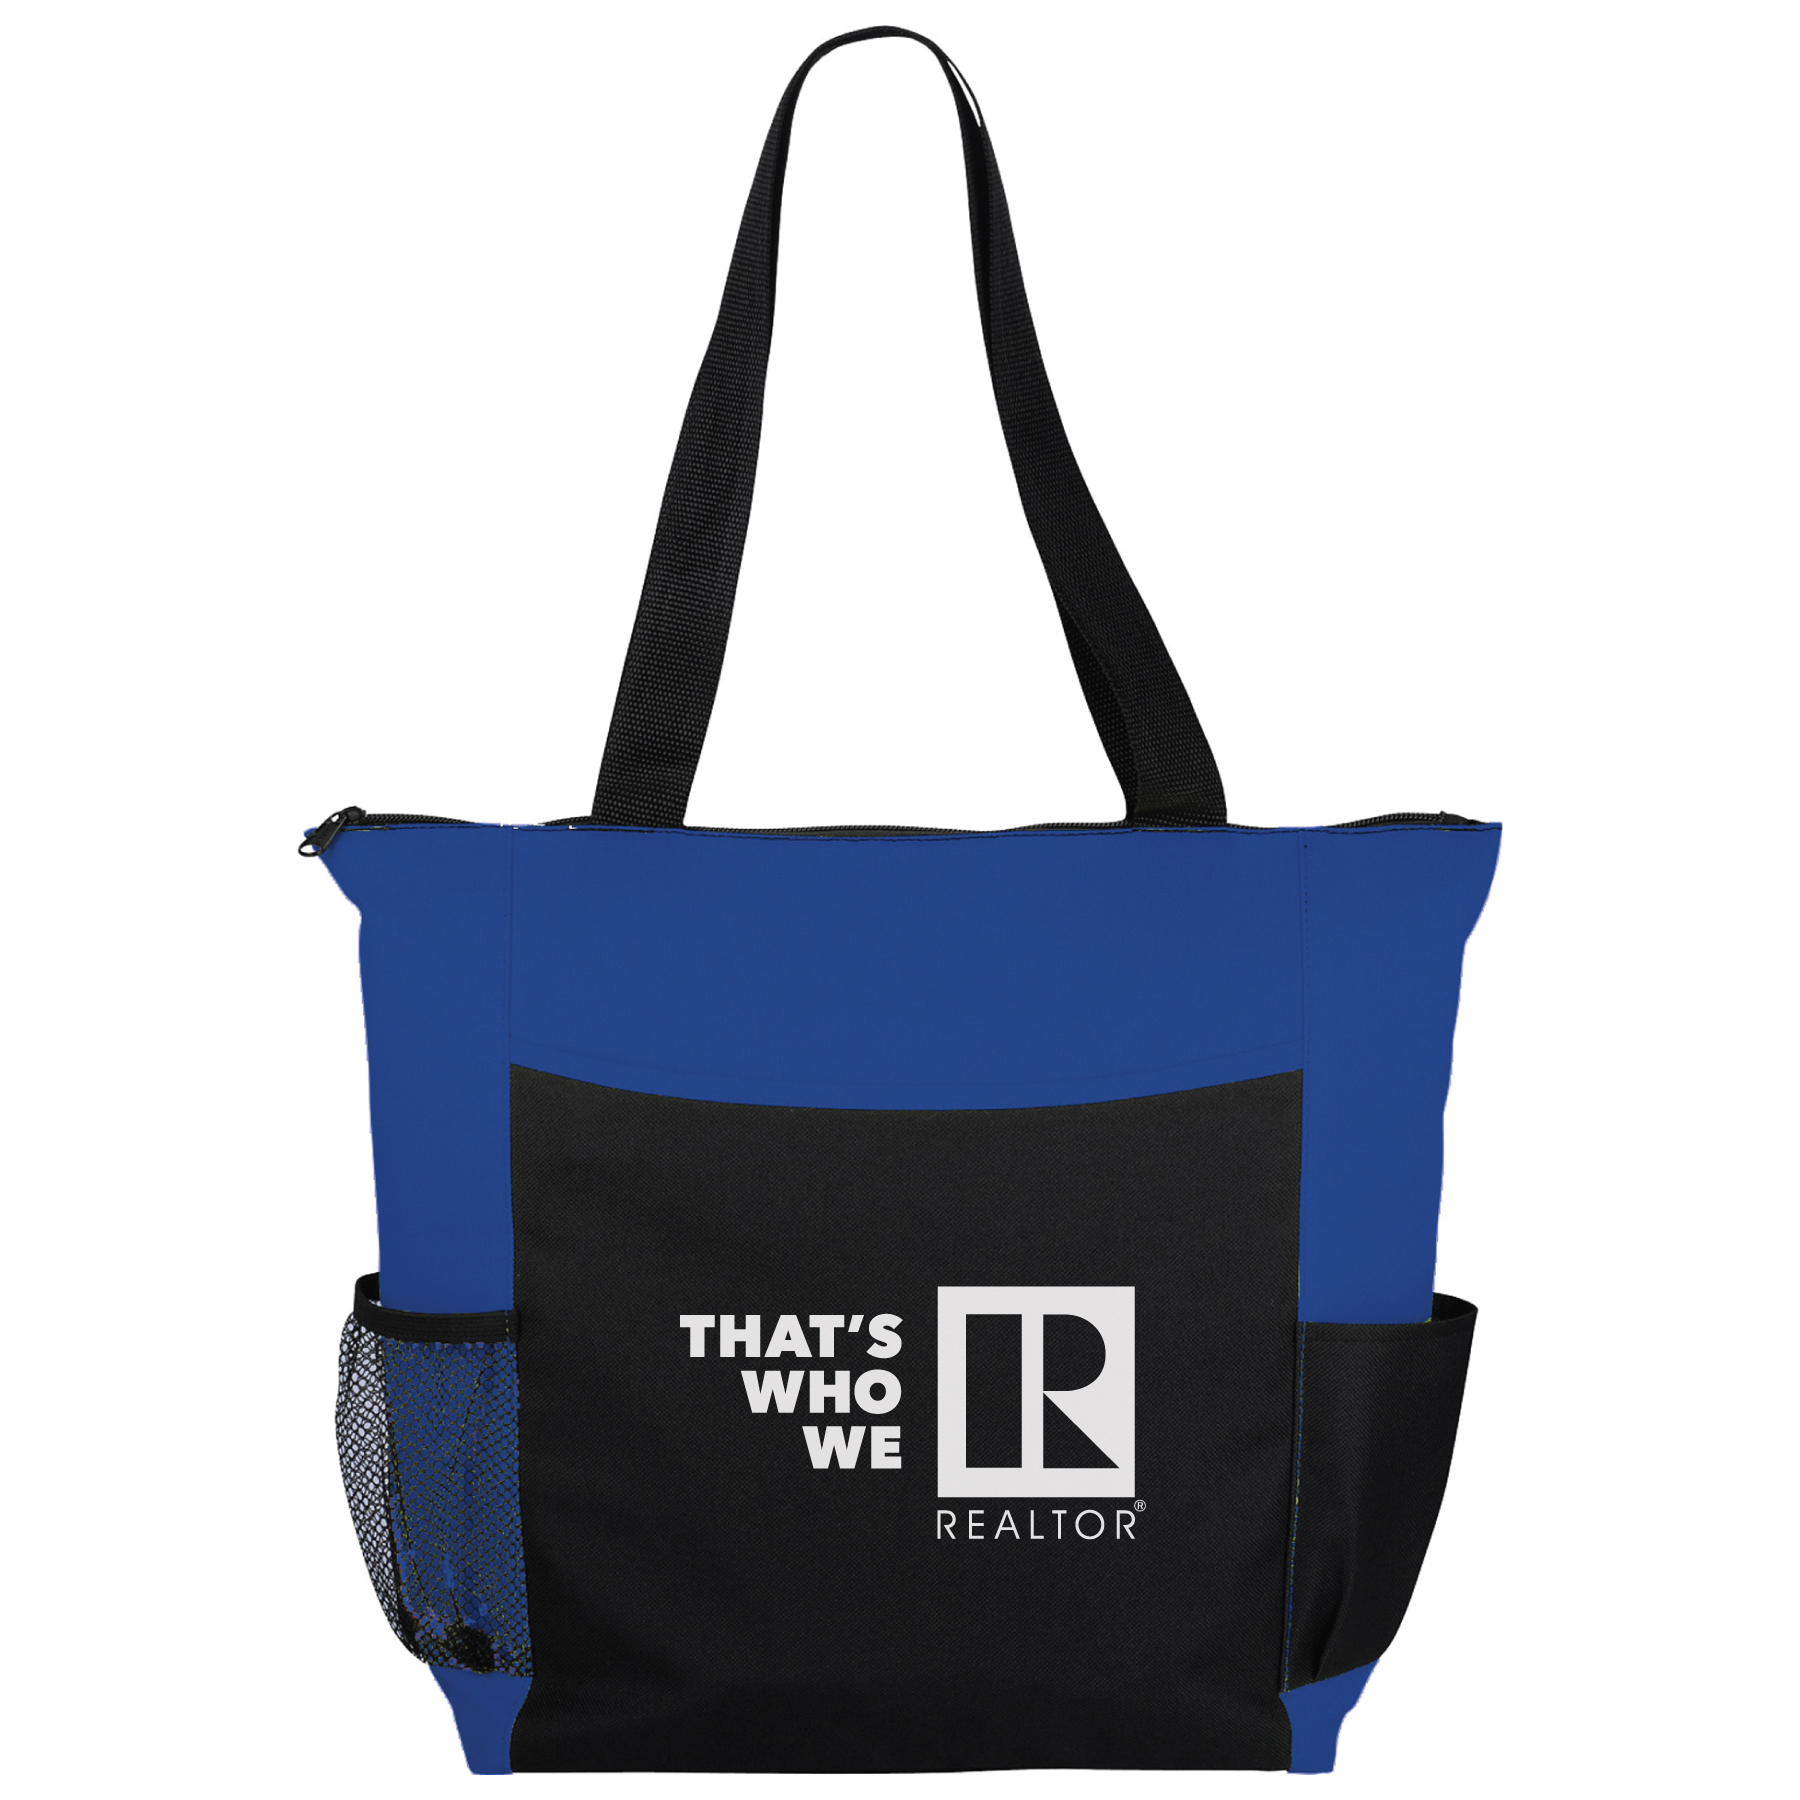 Canvas Bag with Zipper Closure & Bottle Holder twwr,ThatsWhoWeR,Thats,TWWR,ThatWho,ThatsWho,Twwr,Thats,Whos,We,Ares,RTS4002,Totes,Bags,Straps,Satchels,Slings,